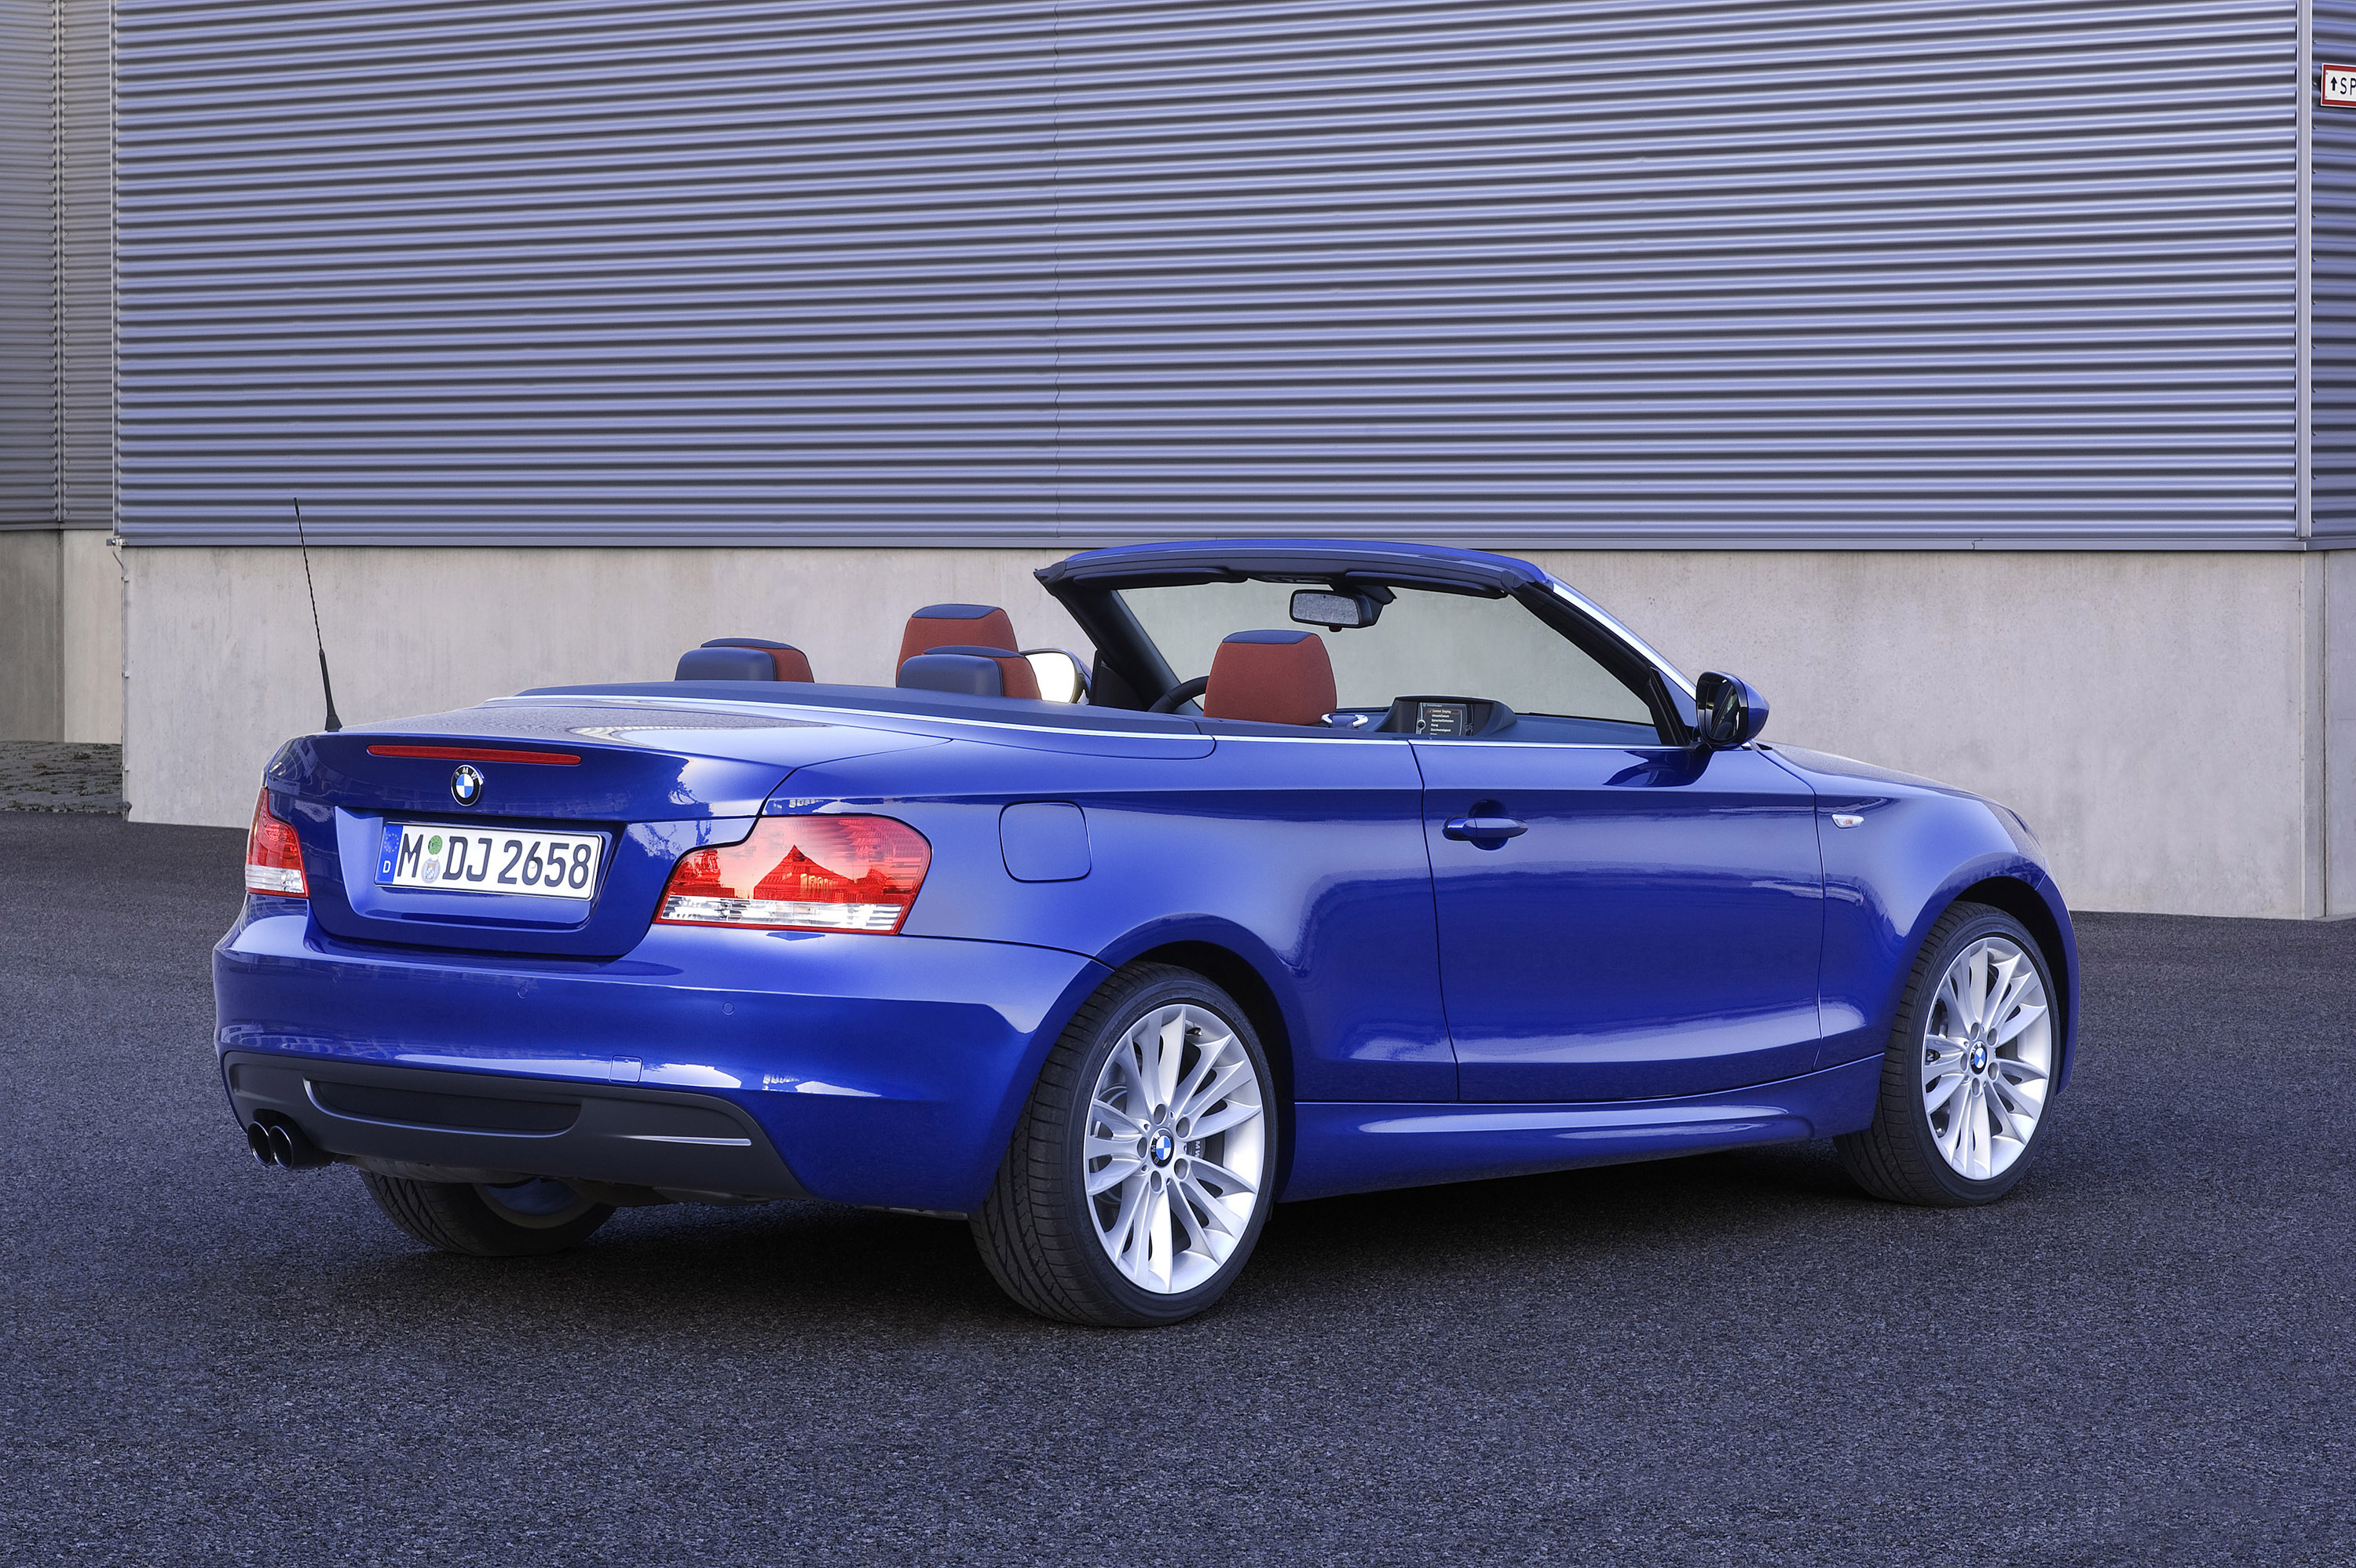 BMW Series E I Convertible Picture - 135i bmw convertible